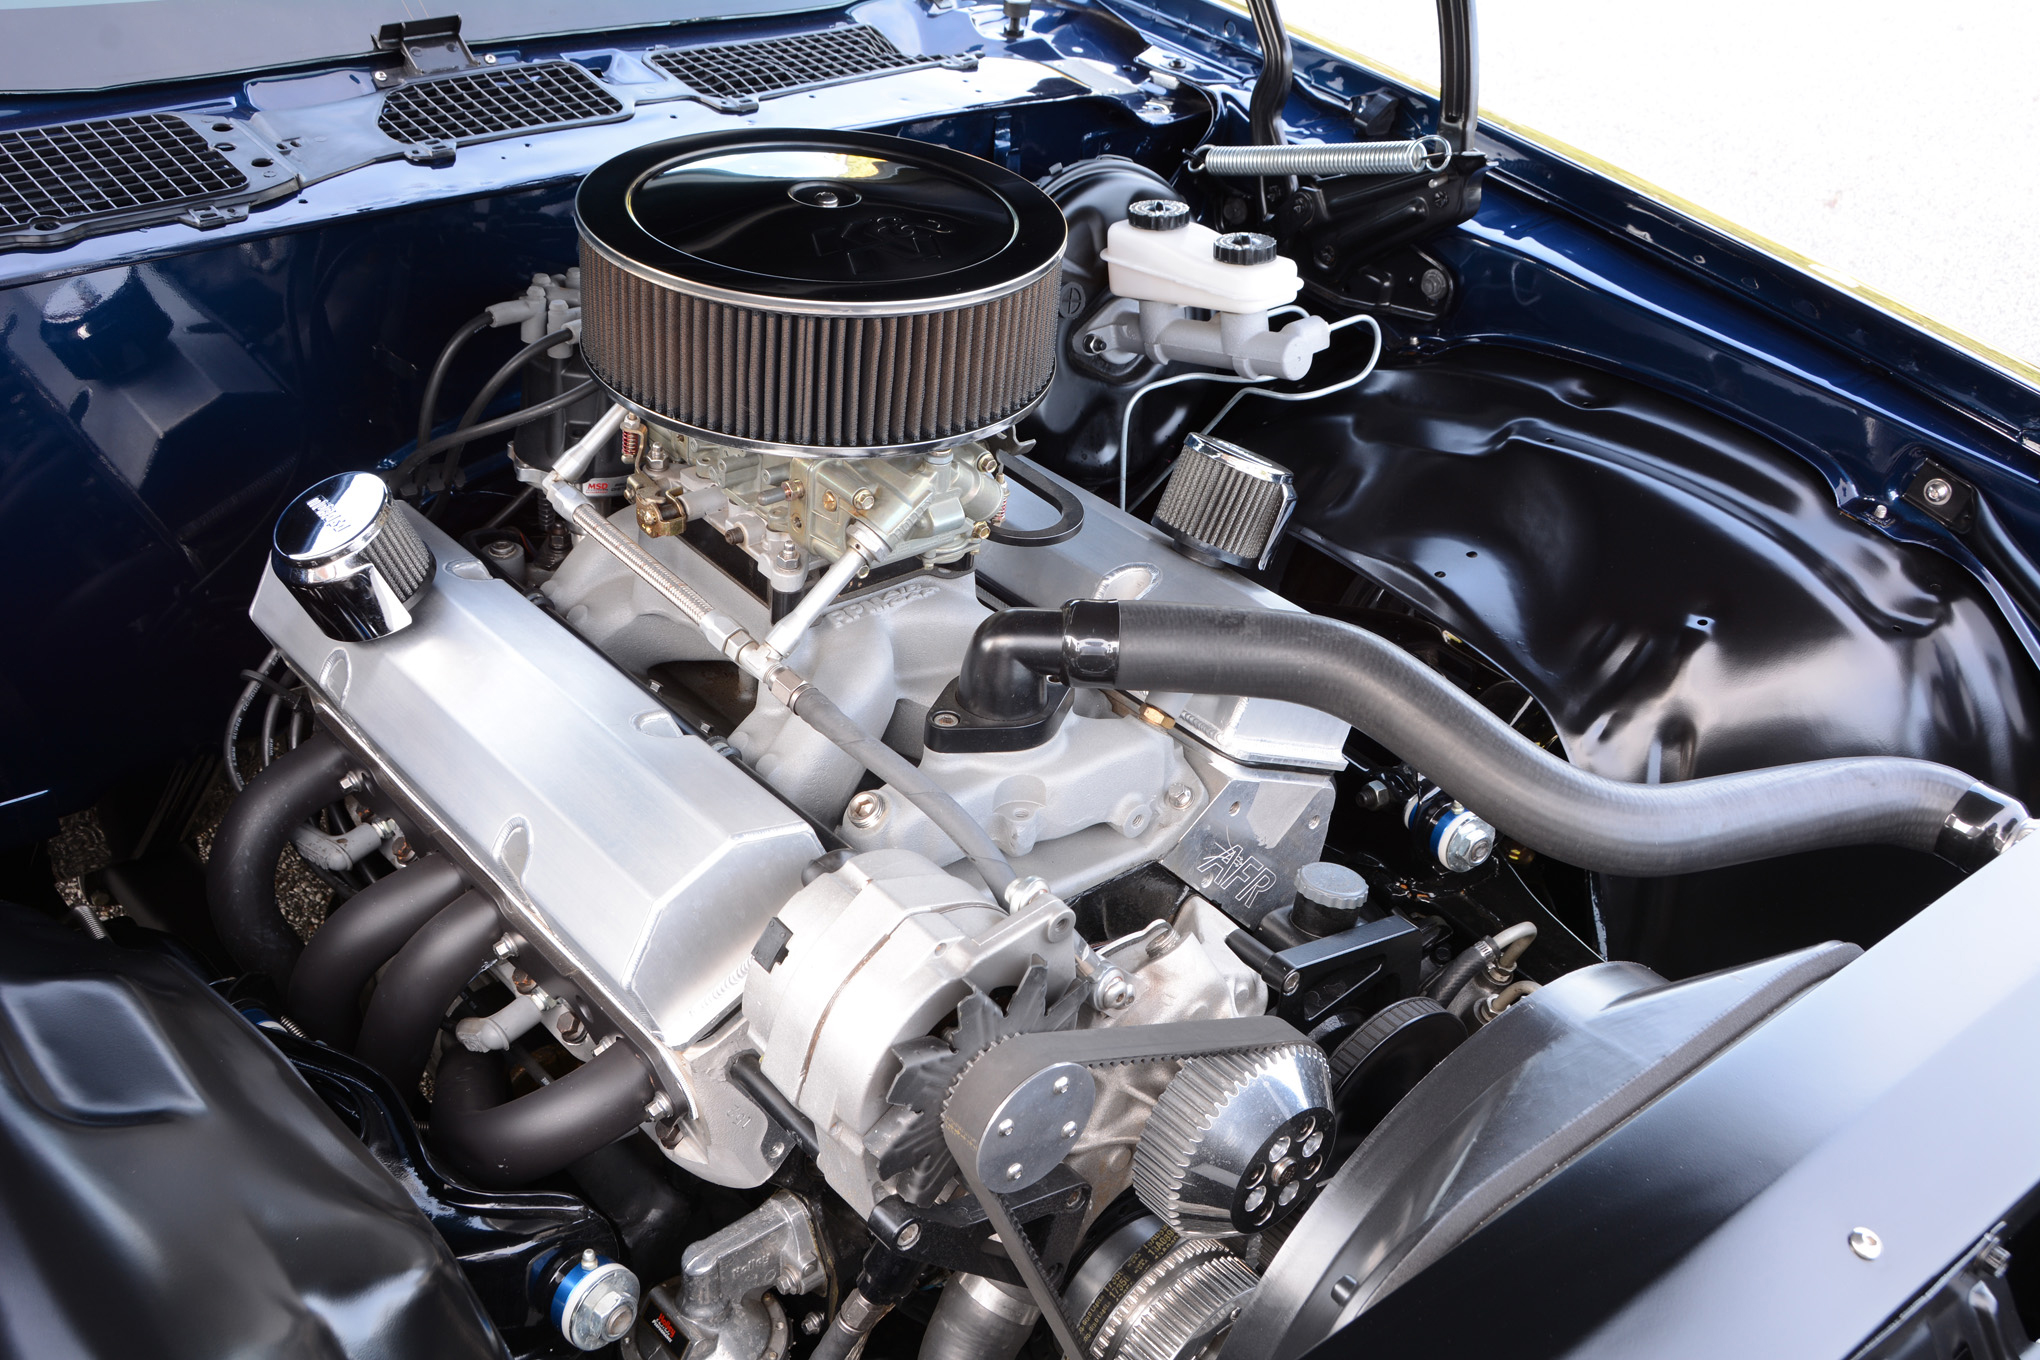 Jonathan Sharpes Killer 1971 Chevy Camaro Hot Rod Network Engine Wiring Diagram On Abit He Swapped In A More Aggressive Small Block And Changed The Automatic To Four Speed Manual Among Many Other Changes Despite Facelift It Was Still